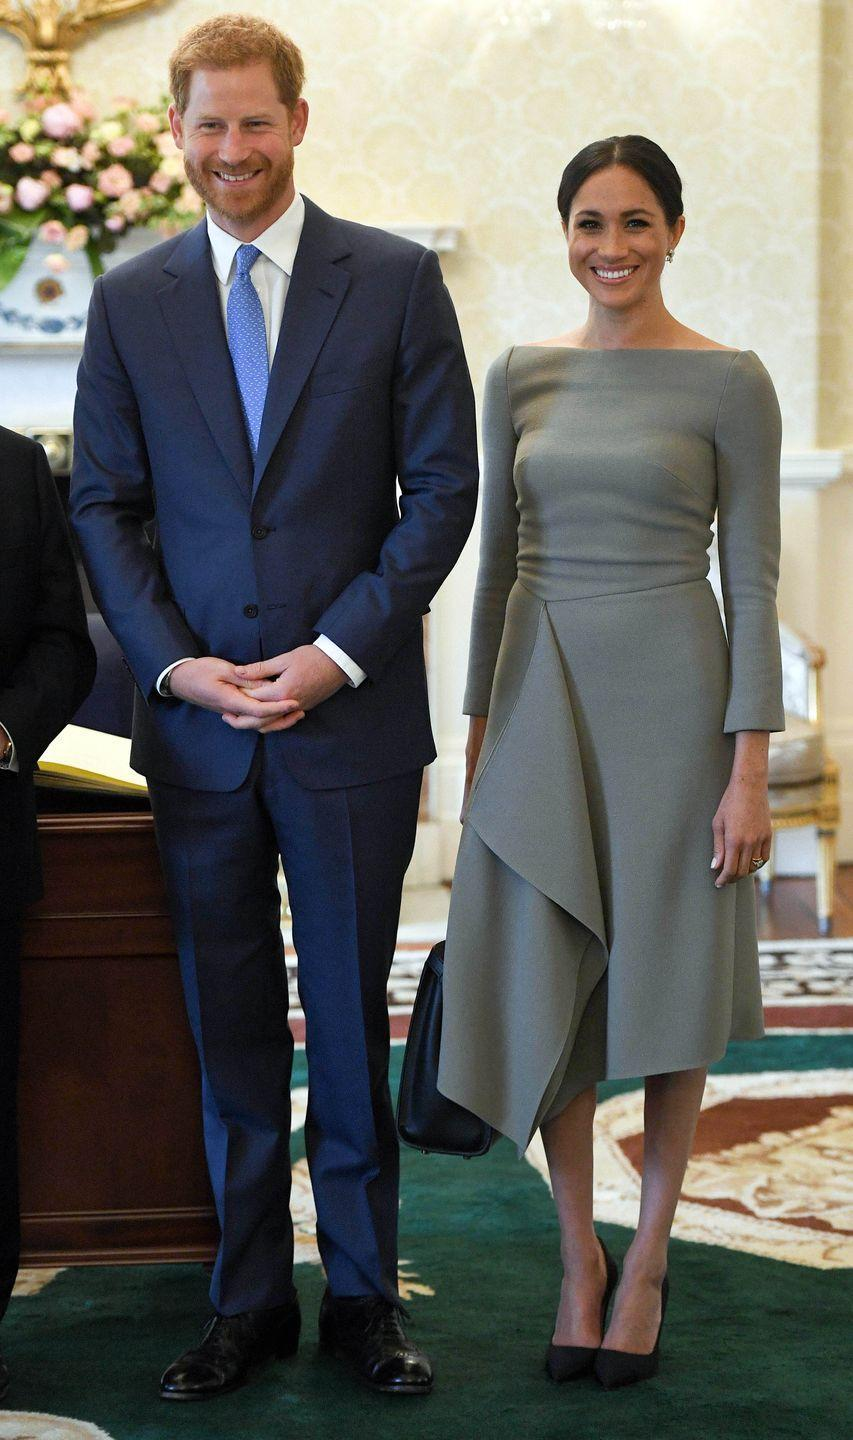 """<p>Harry and Meghan <a href=""""https://www.townandcountrymag.com/society/tradition/g22096025/prince-harry-meghan-markle-dublin-ireland-tour-photos/"""" rel=""""nofollow noopener"""" target=""""_blank"""" data-ylk=""""slk:kicked off day two of their royal tour"""" class=""""link rapid-noclick-resp"""">kicked off day two of their royal tour</a> with a visit to the Irish President's residence. The Duchess wore a bespoke dress by Roland Mouret with a Fendi handbag and a pair of black heels by Paul Andrew. </p><p><a class=""""link rapid-noclick-resp"""" href=""""https://go.redirectingat.com?id=74968X1596630&url=https%3A%2F%2Fwww.net-a-porter.com%2Fus%2Fen%2Fproduct%2F497190%2Ffendi%2Fpeekaboo-medium-leather-tote&sref=https%3A%2F%2Fwww.townandcountrymag.com%2Fstyle%2Ffashion-trends%2Fg3272%2Fmeghan-markle-preppy-style%2F"""" rel=""""nofollow noopener"""" target=""""_blank"""" data-ylk=""""slk:SHOP SIMILAR"""">SHOP SIMILAR</a> <em>Fendi Peekaboo Medium Leather T</em><em>ote, $4,100</em></p>"""